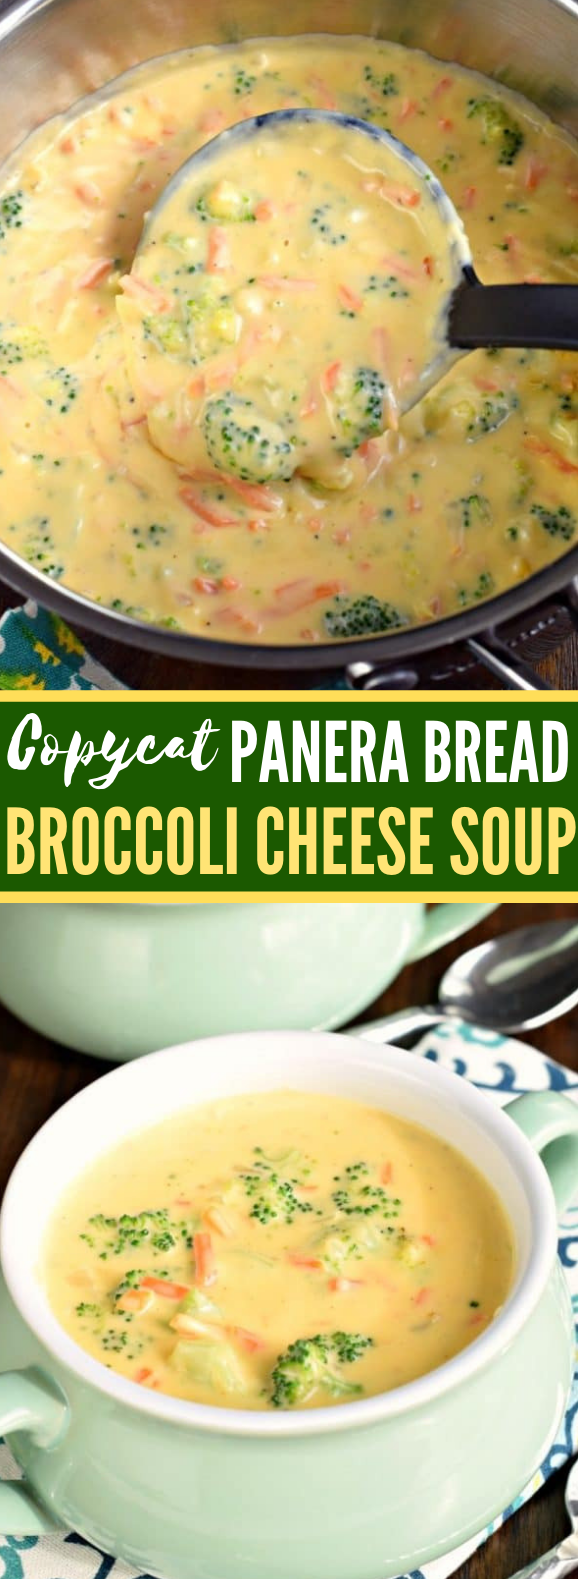 Copycat Panera Broccoli Cheese Soup Recipe #dinner #meals